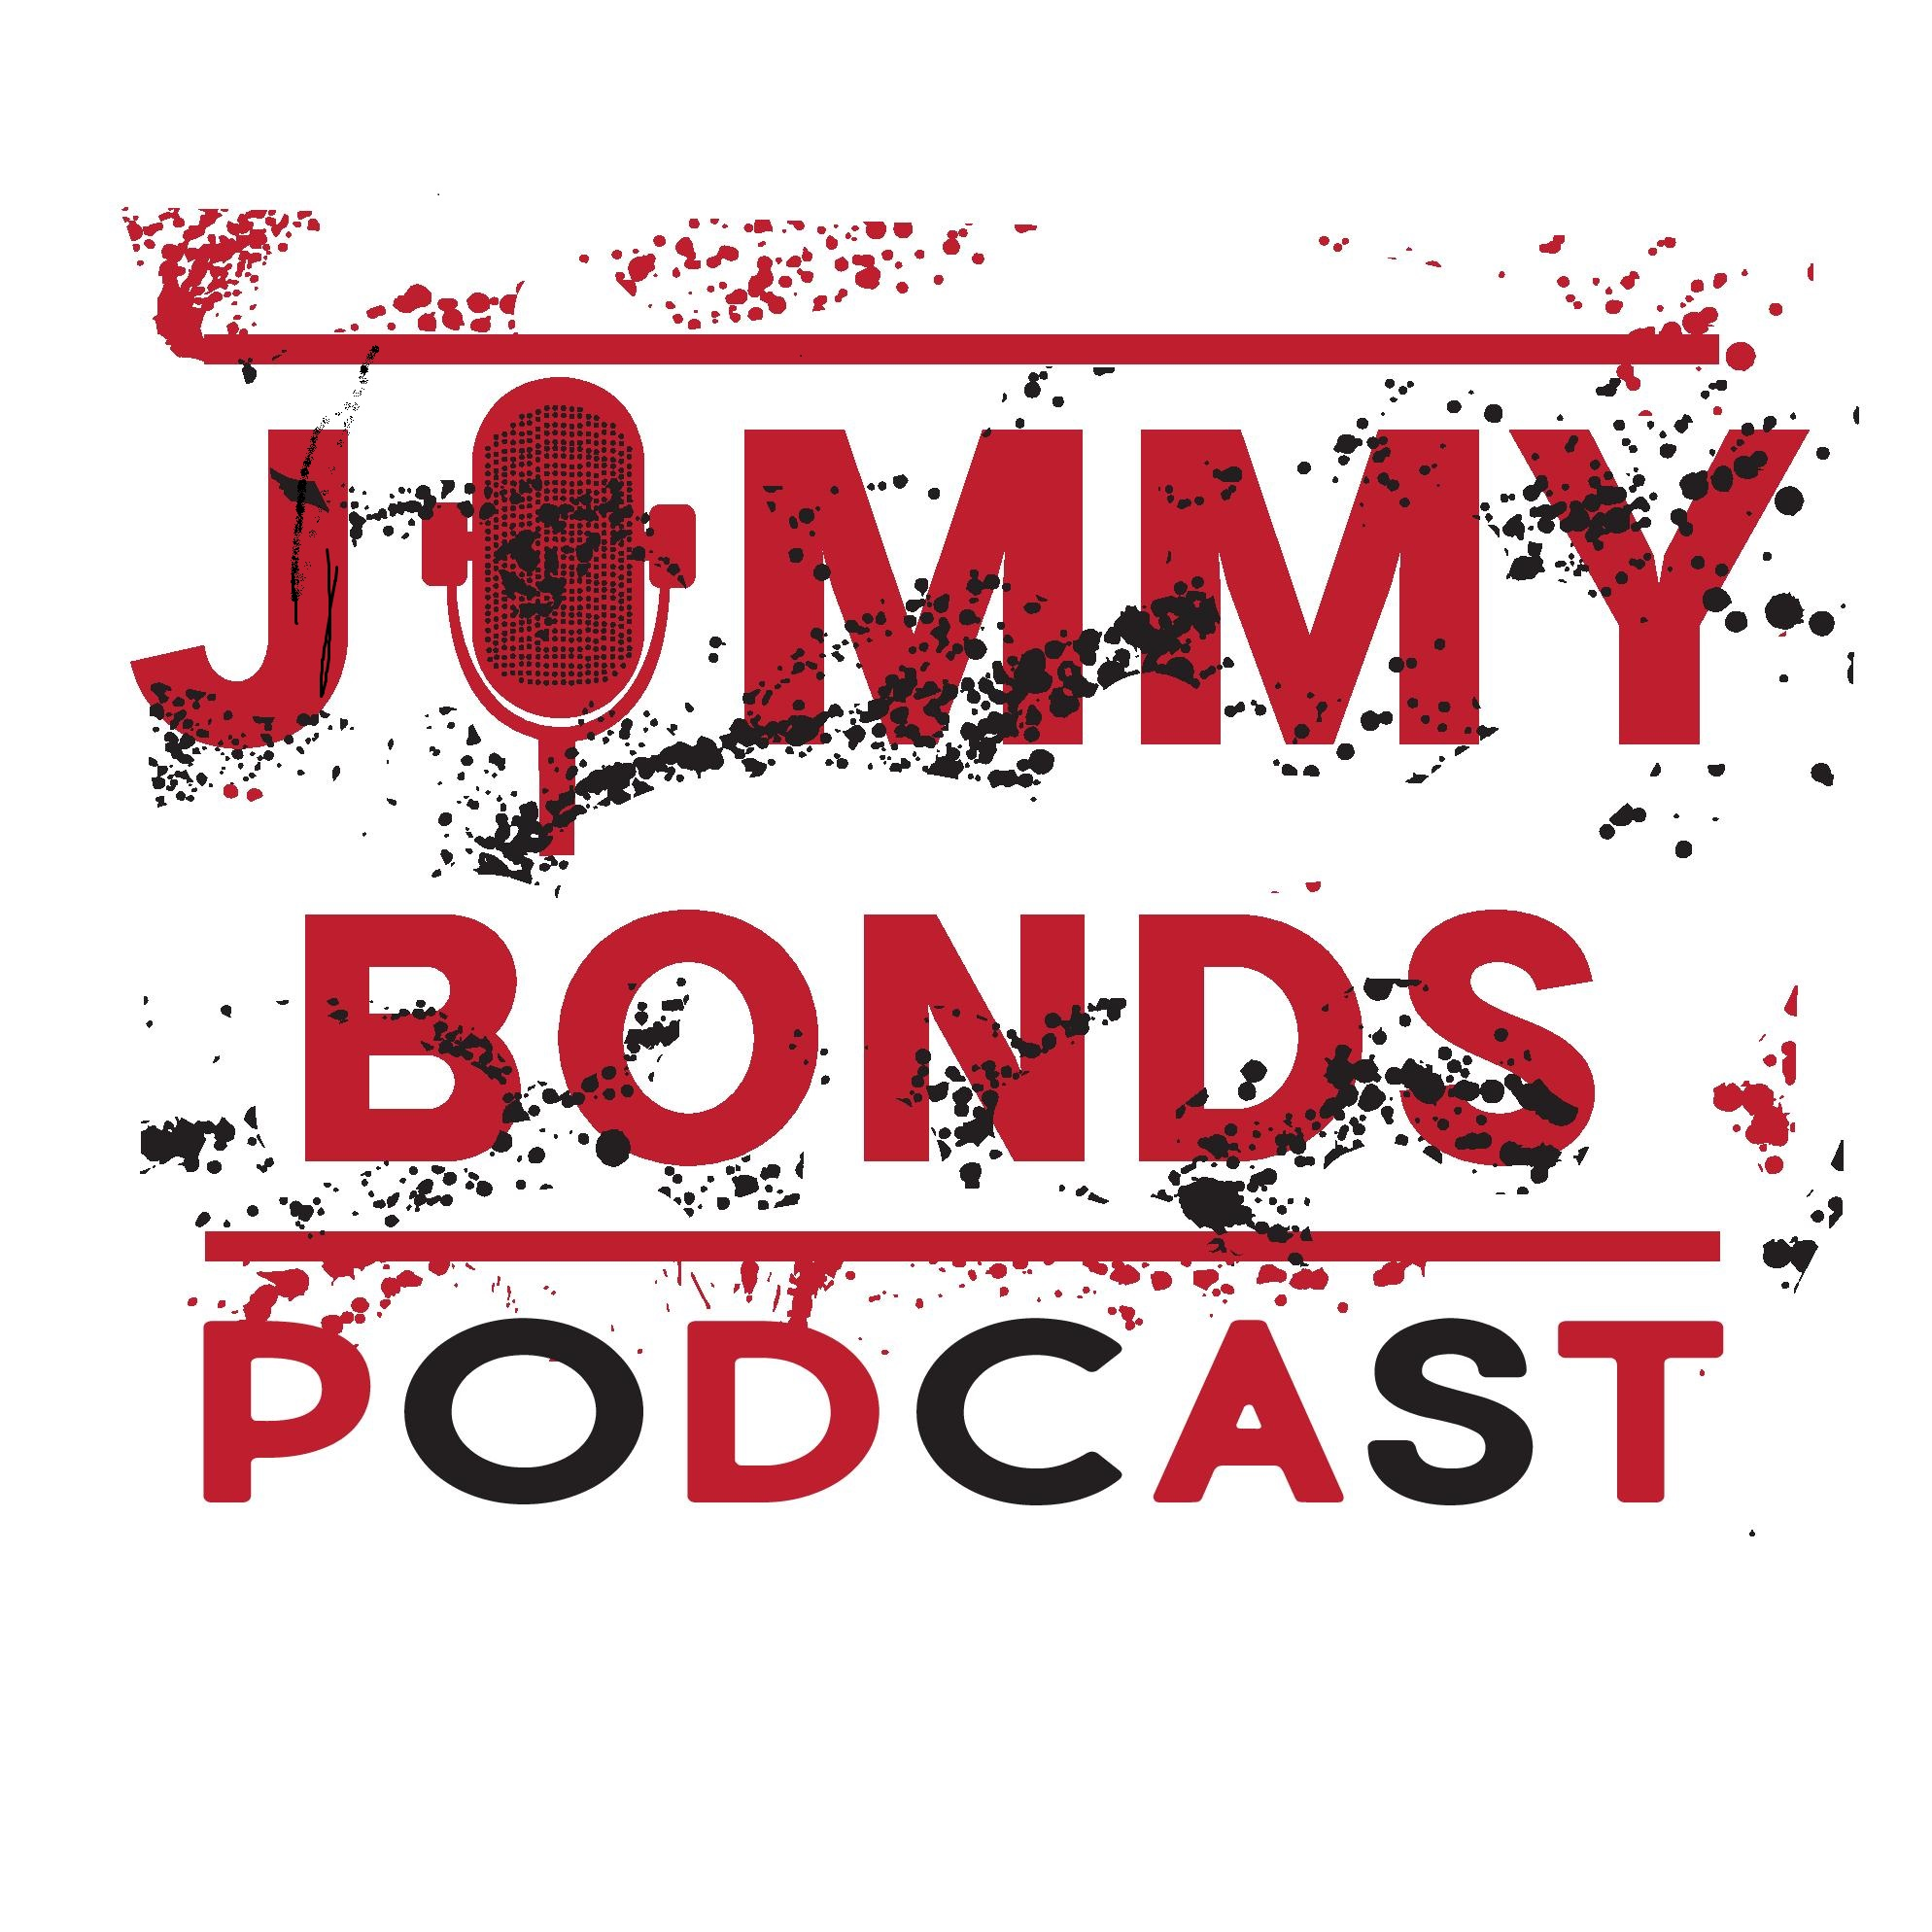 Art for Jimmy Bonds Podcast (drop) by Untitled Artist